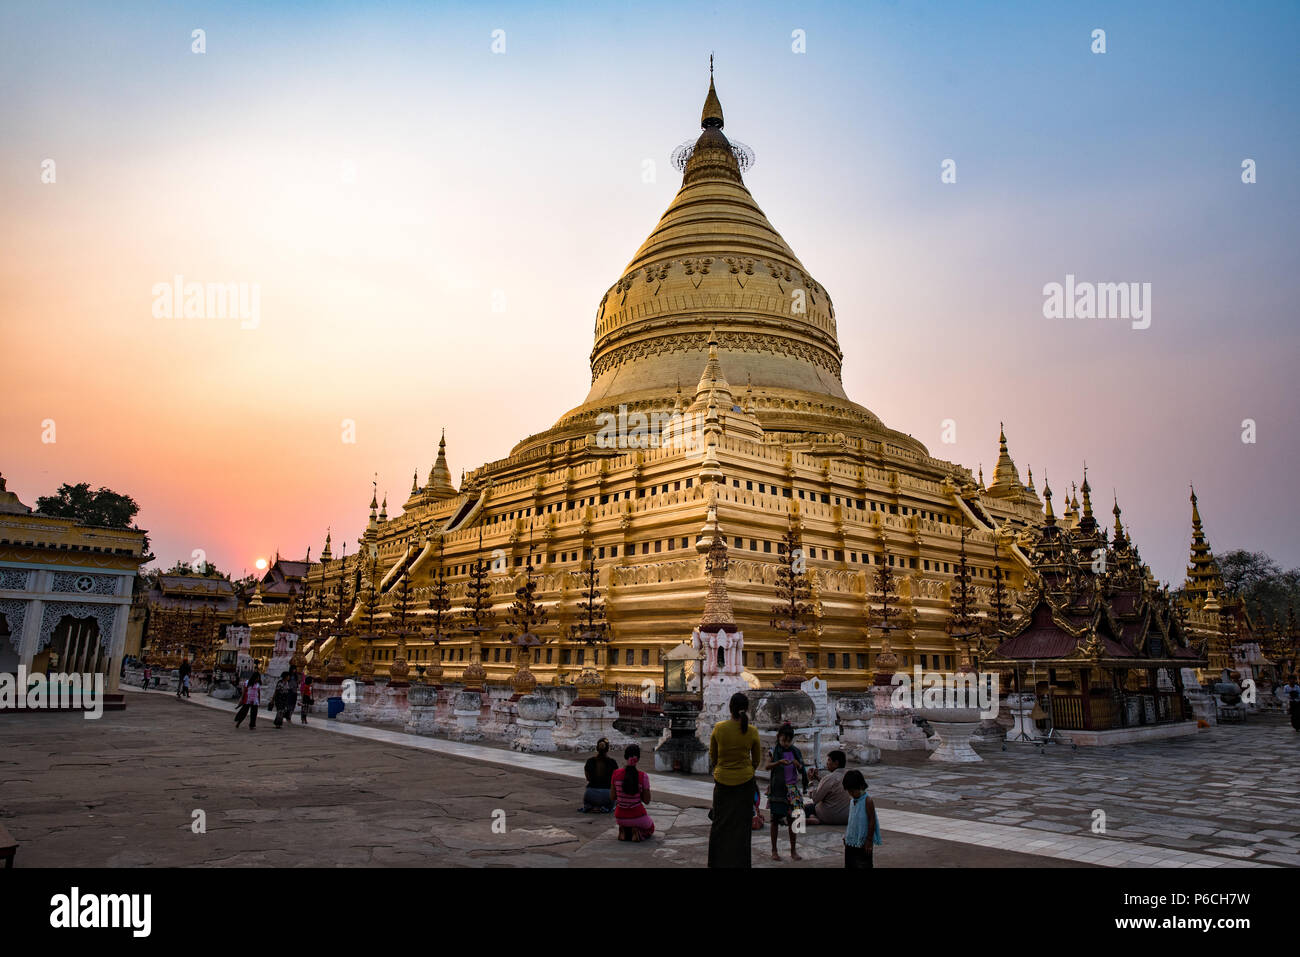 Golden Shwezigon pagoda in Bagan, Myanmar Stock Photo